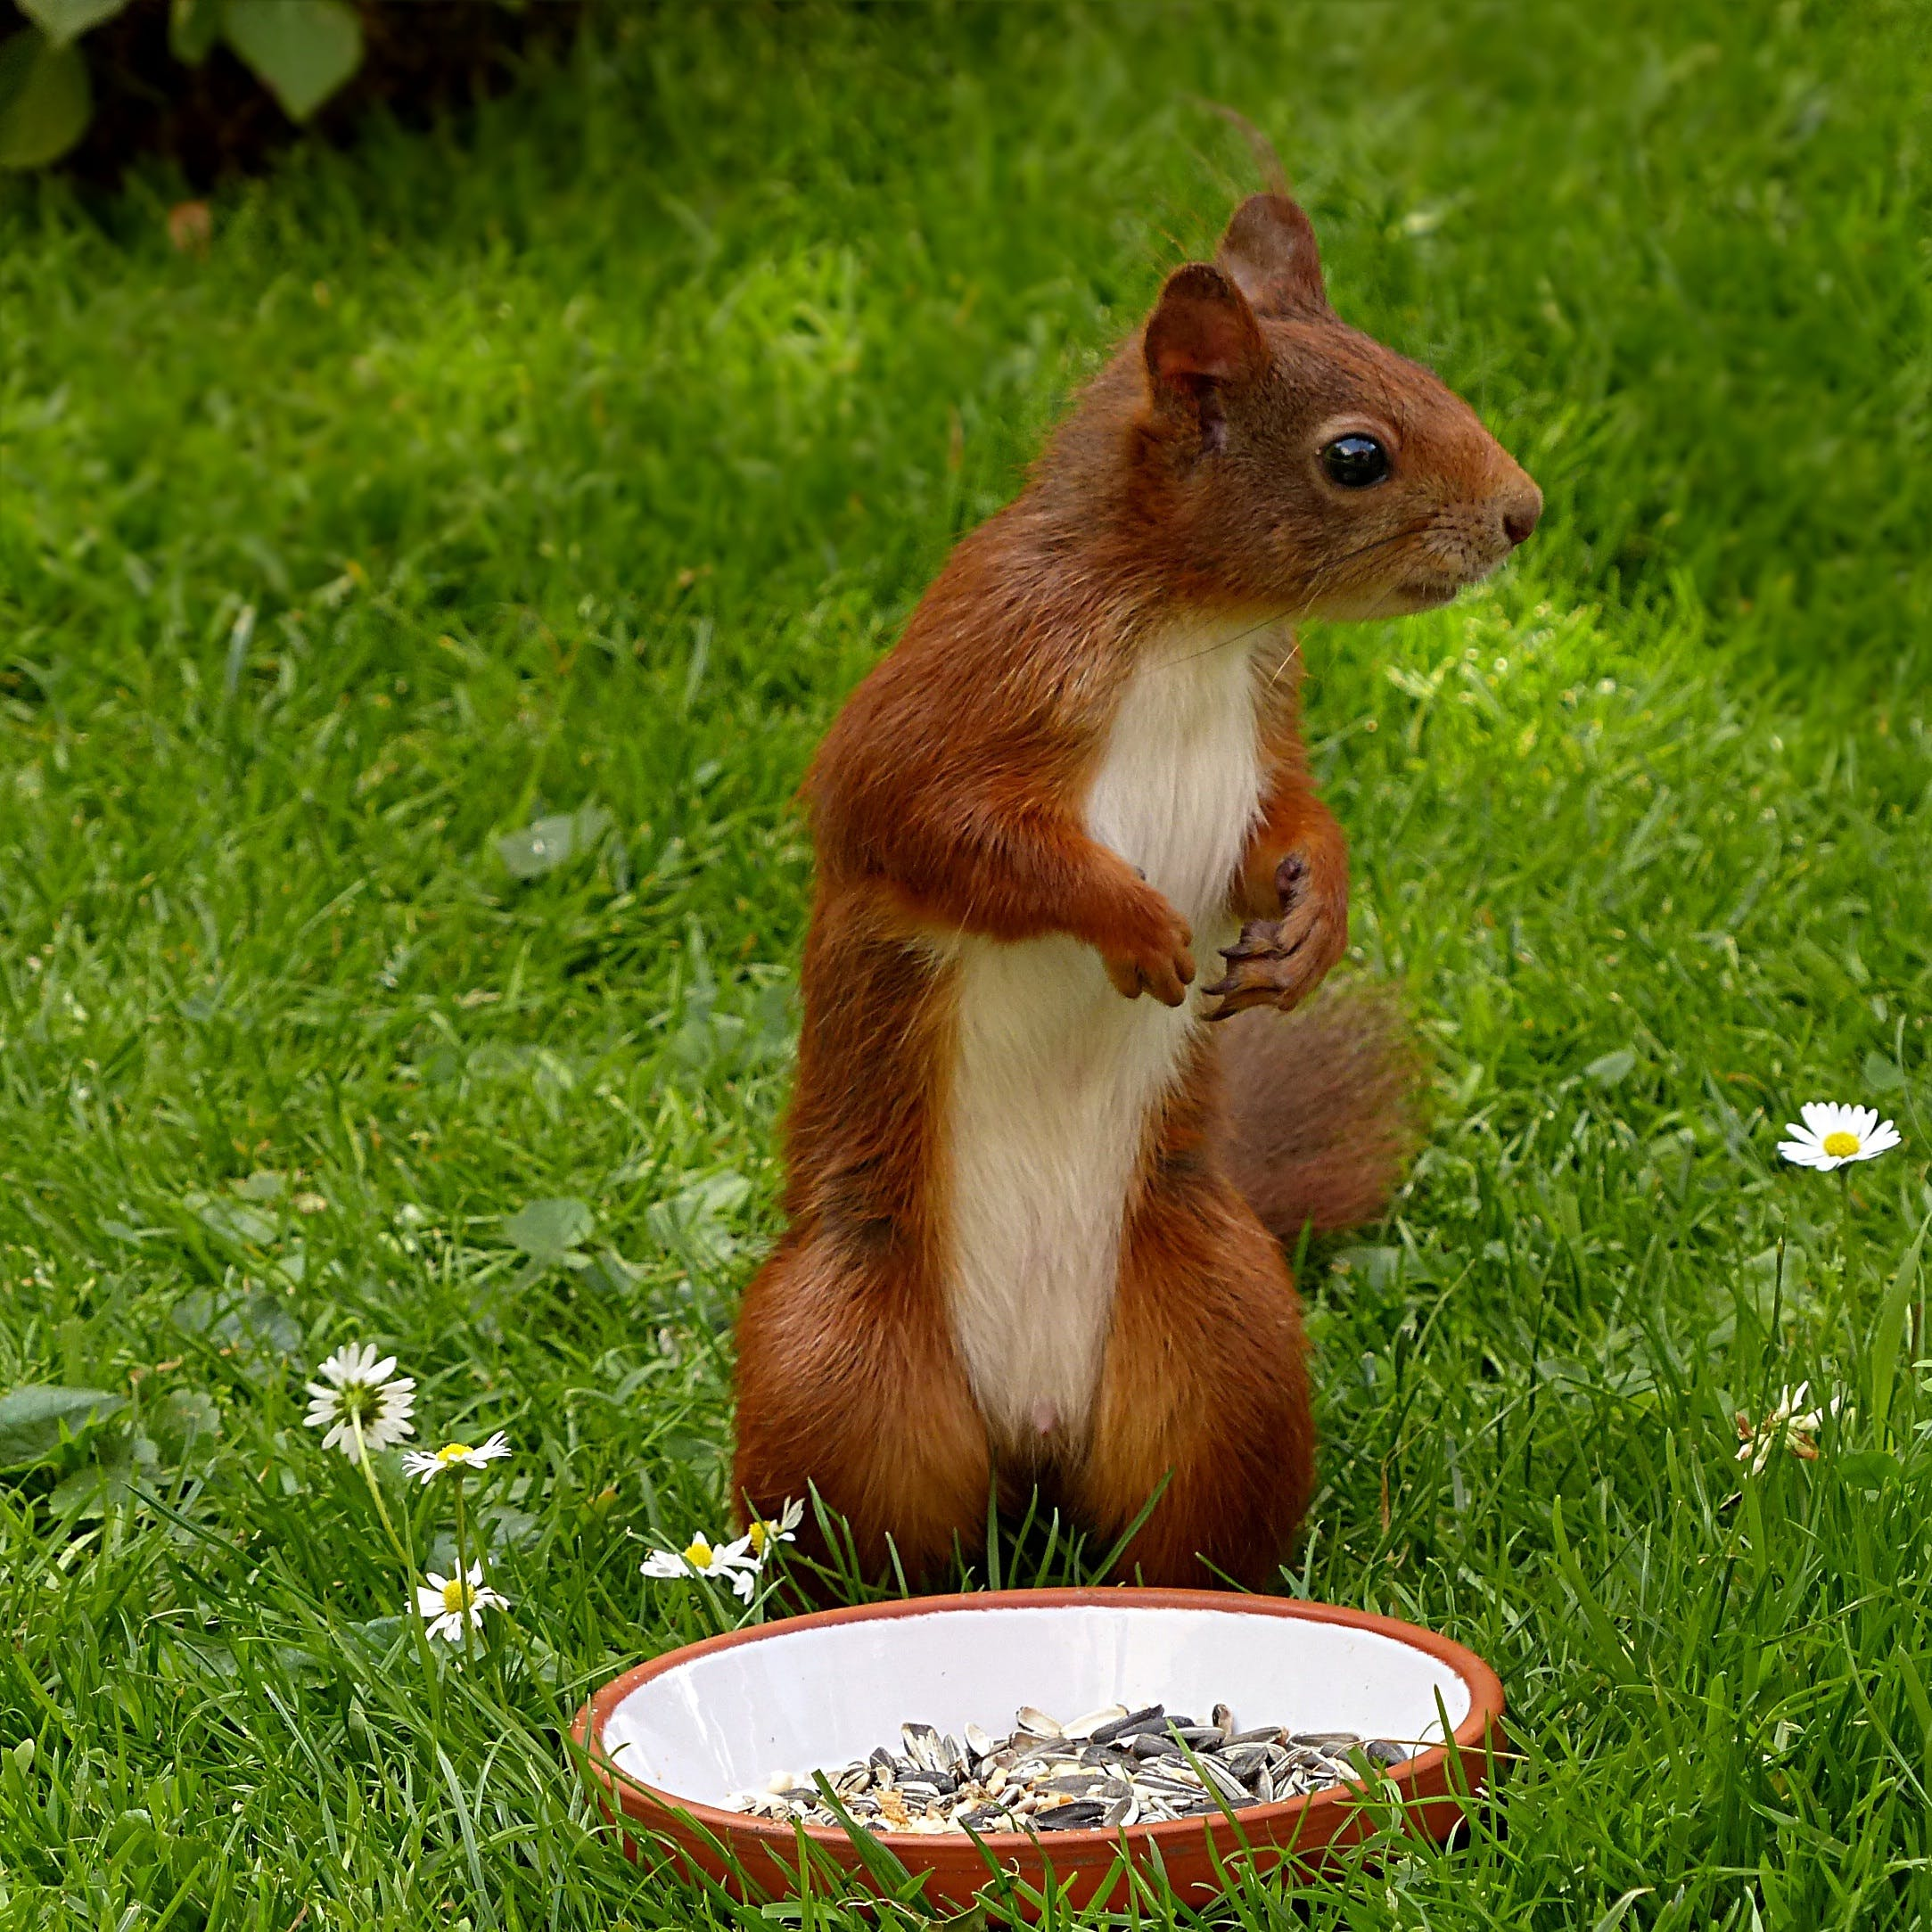 Brown and White Squirrel on Green Grass